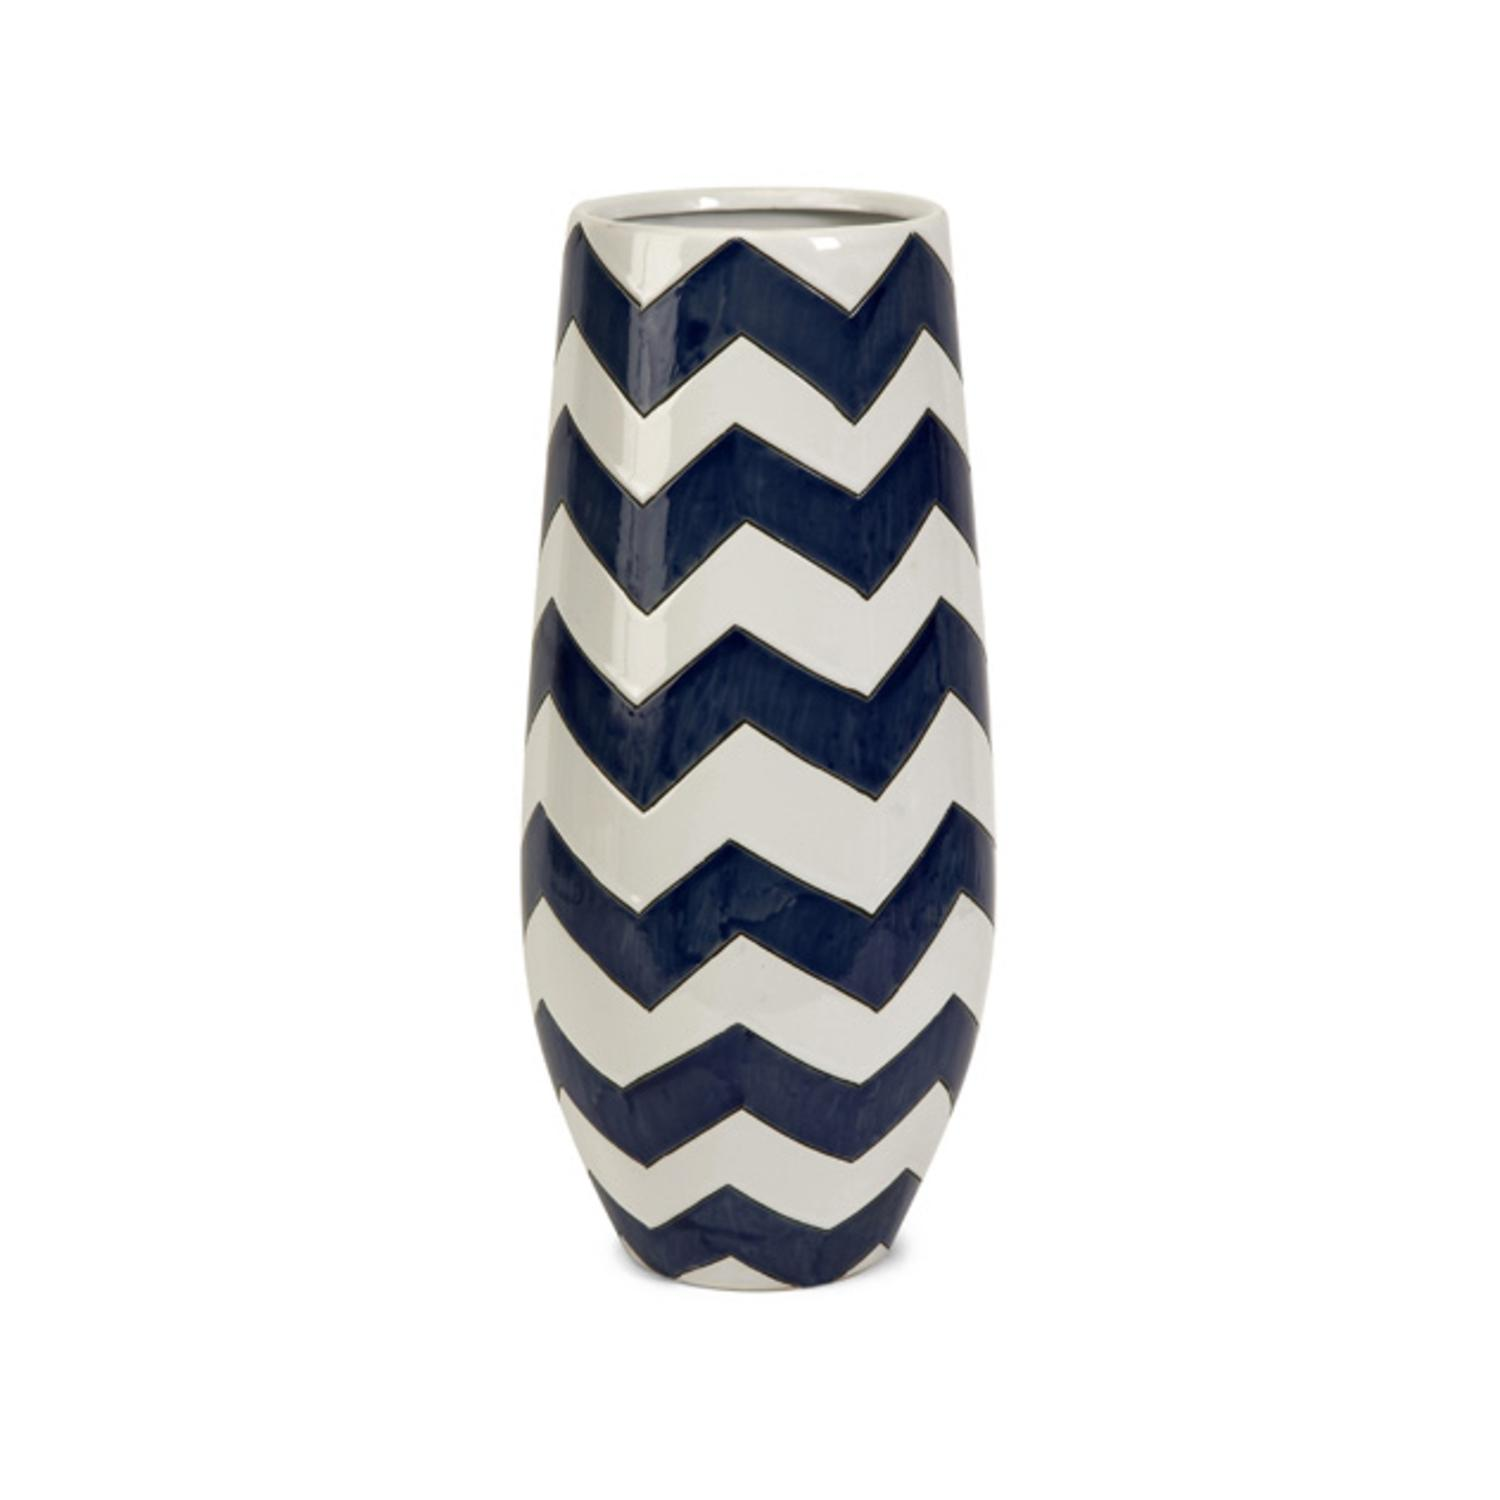 """15.75"""" Classic Jibe Navy Blue and White Patterned Short Ceramic Table Top Vase"""